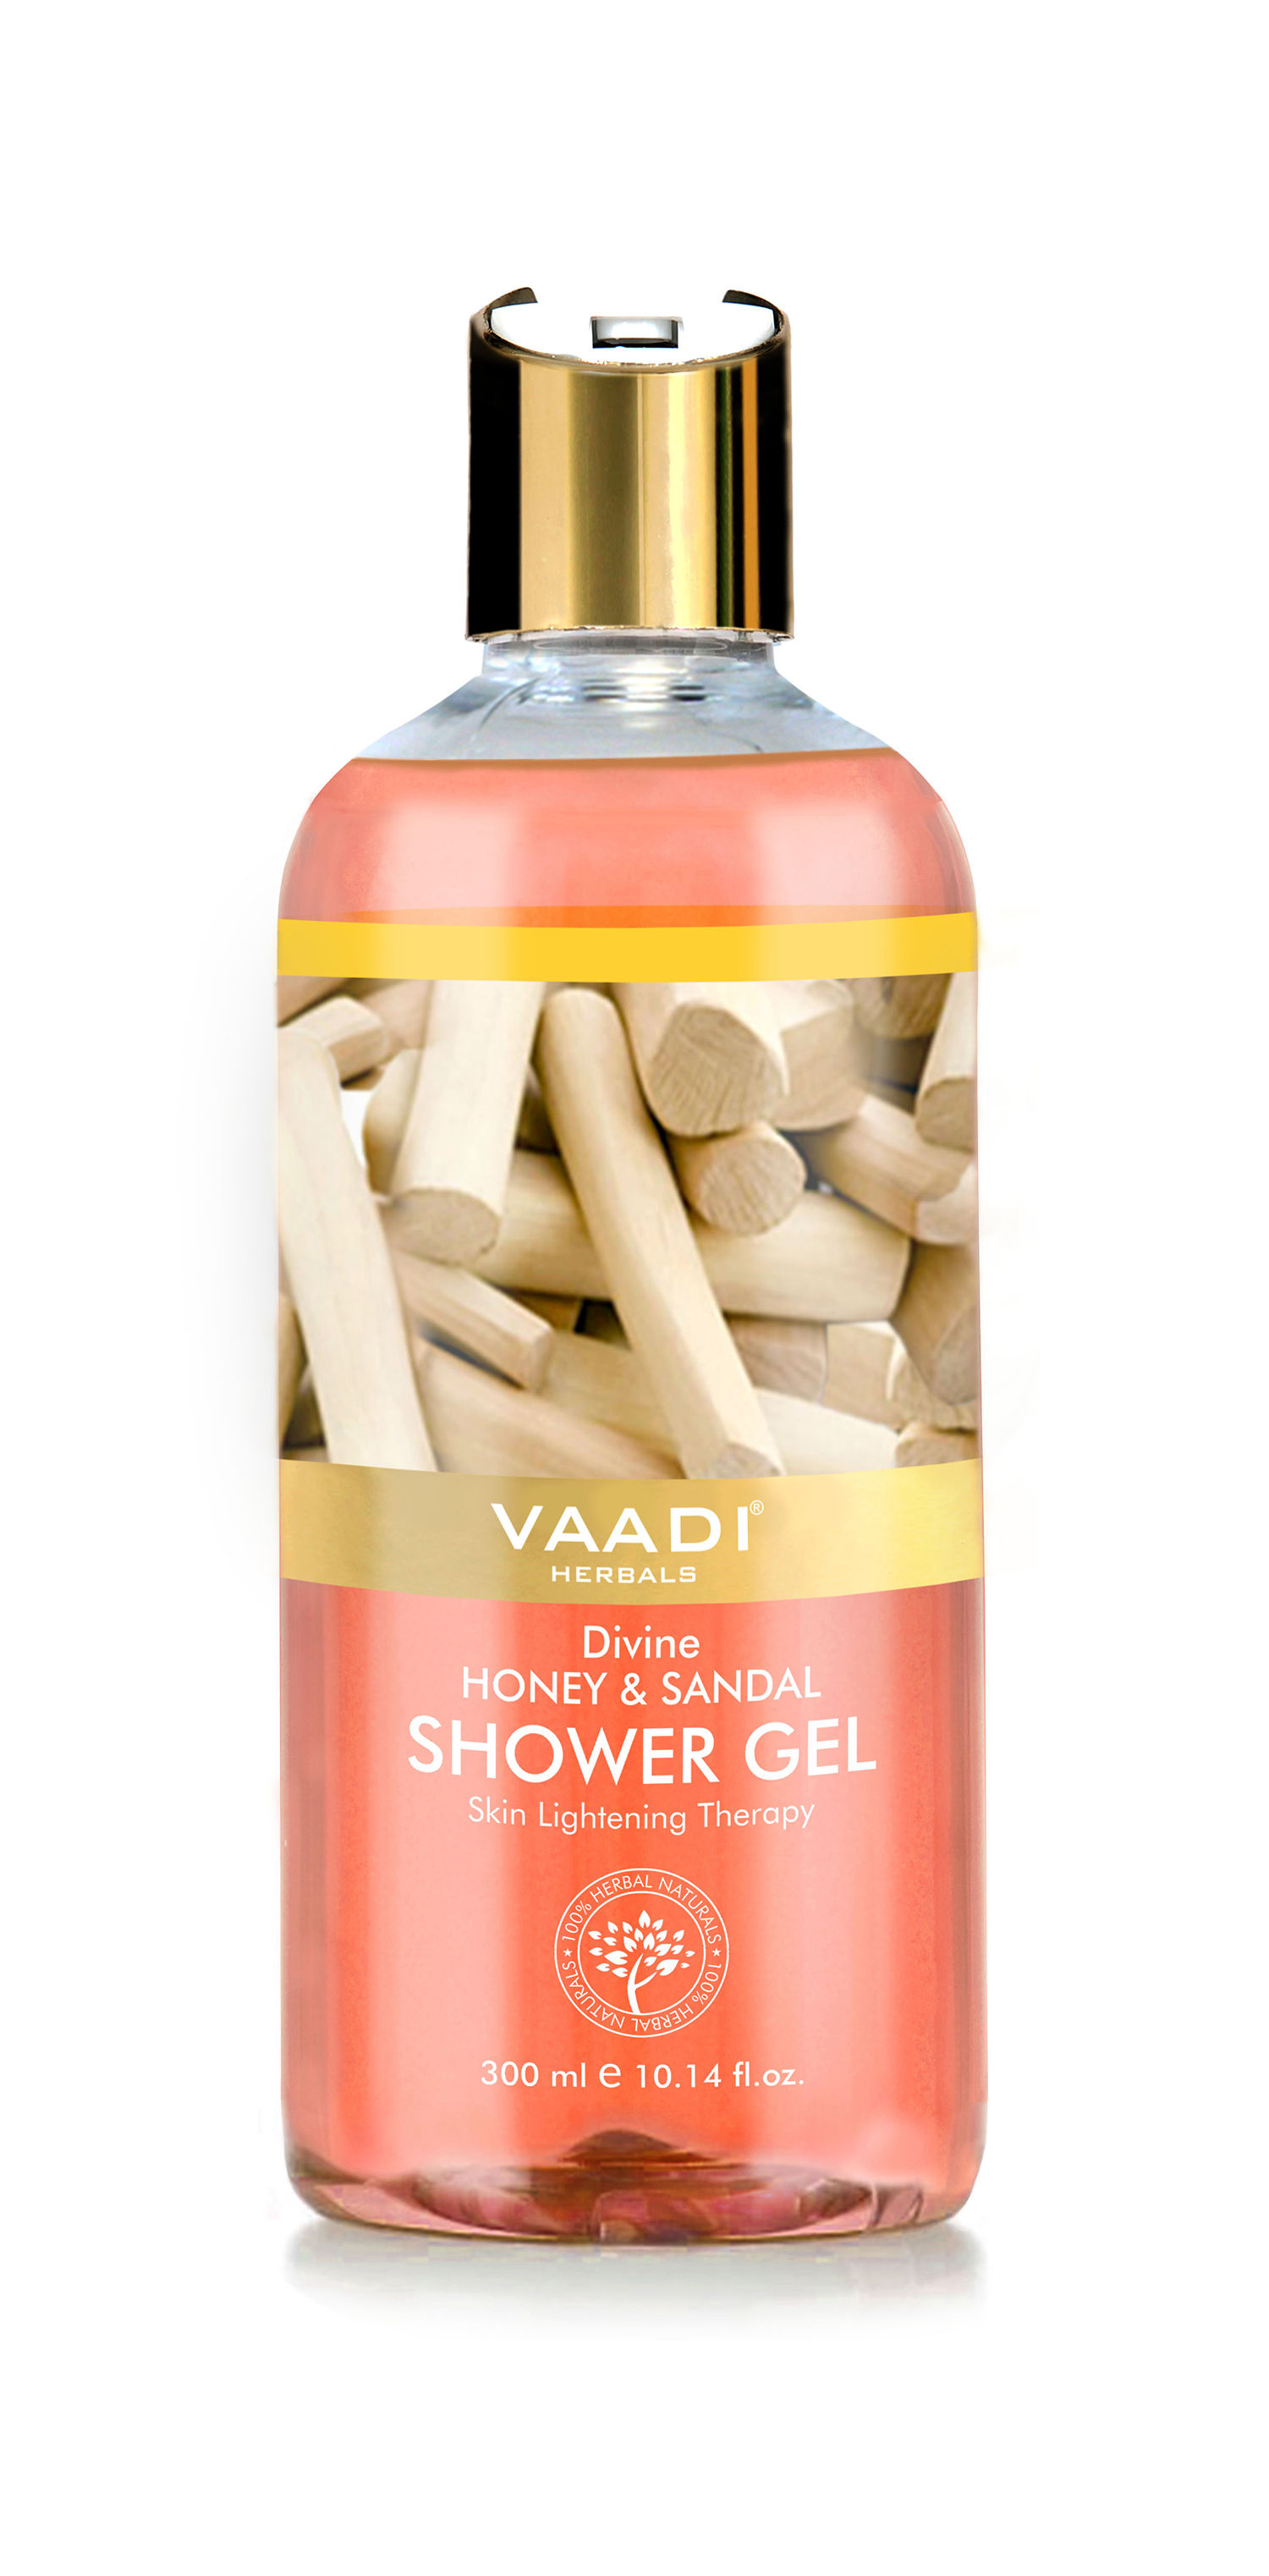 Vaadi Herbals Divine Honey & Sandal Shower Gel, 300 ML